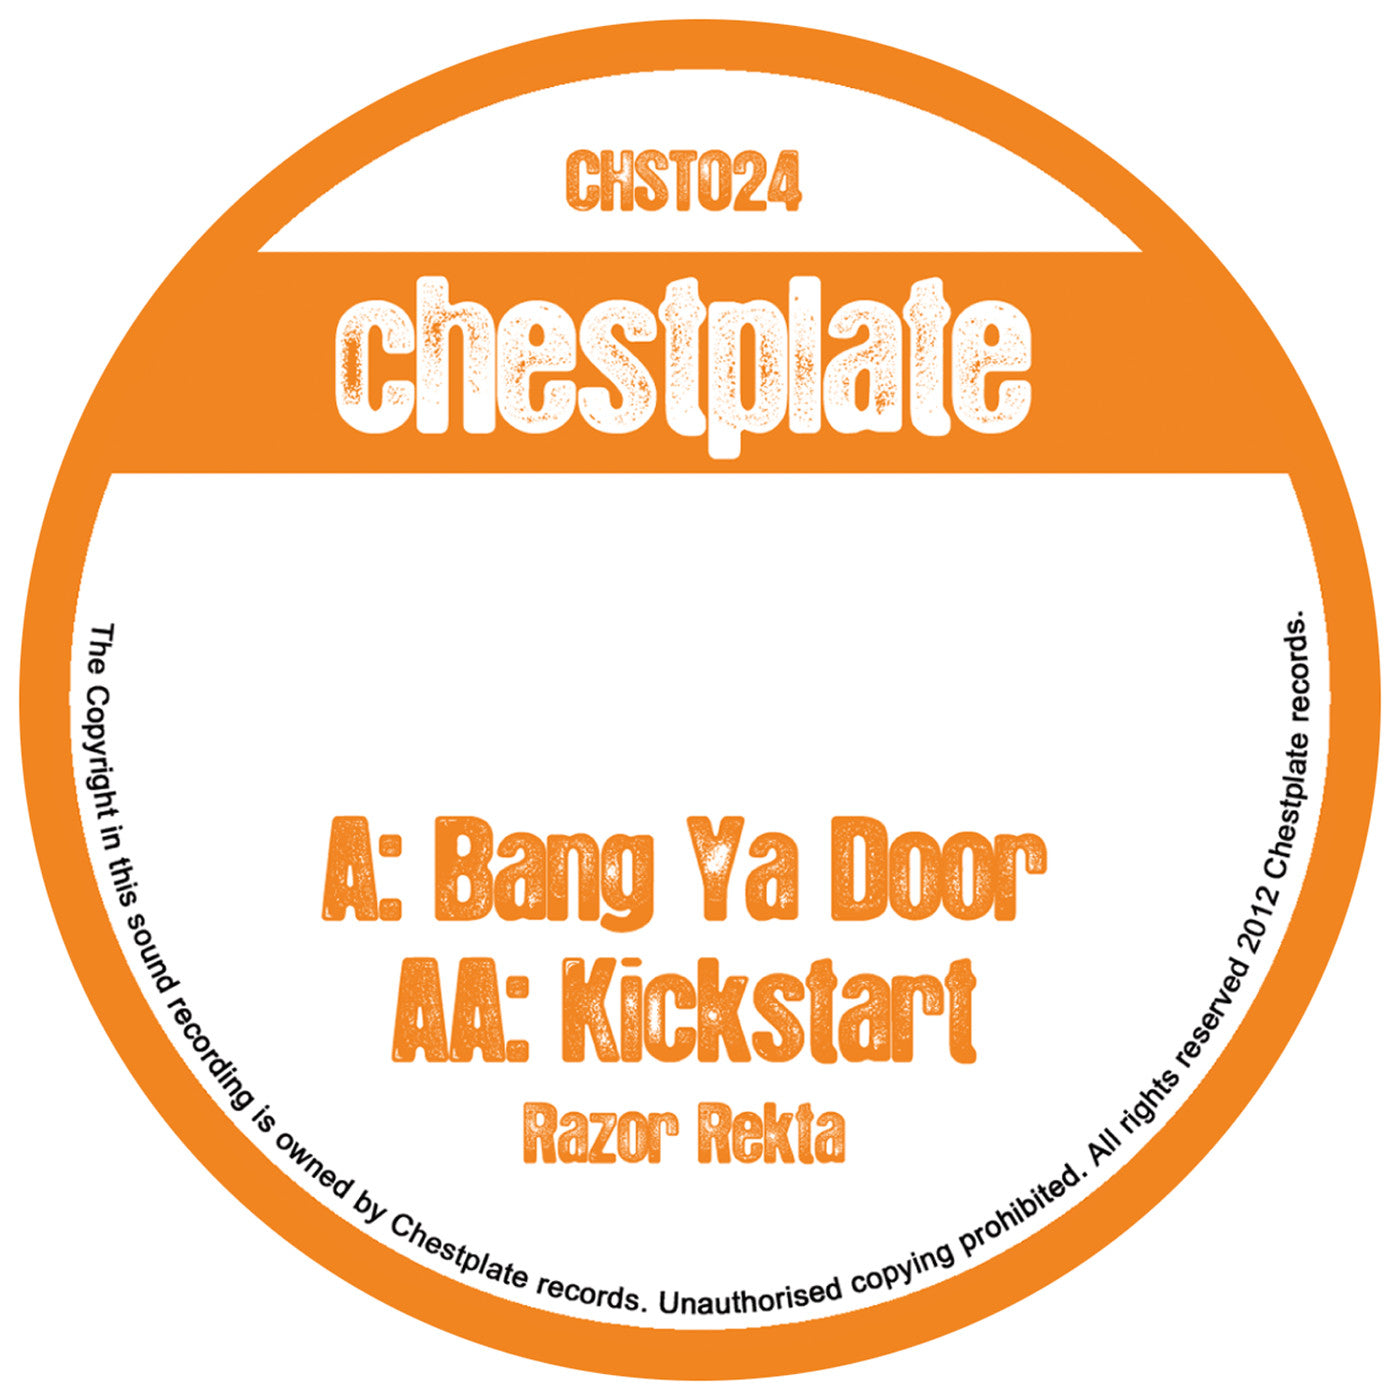 Razor Rekta - Bang Ya Door/ Kick Start - Unearthed Sounds